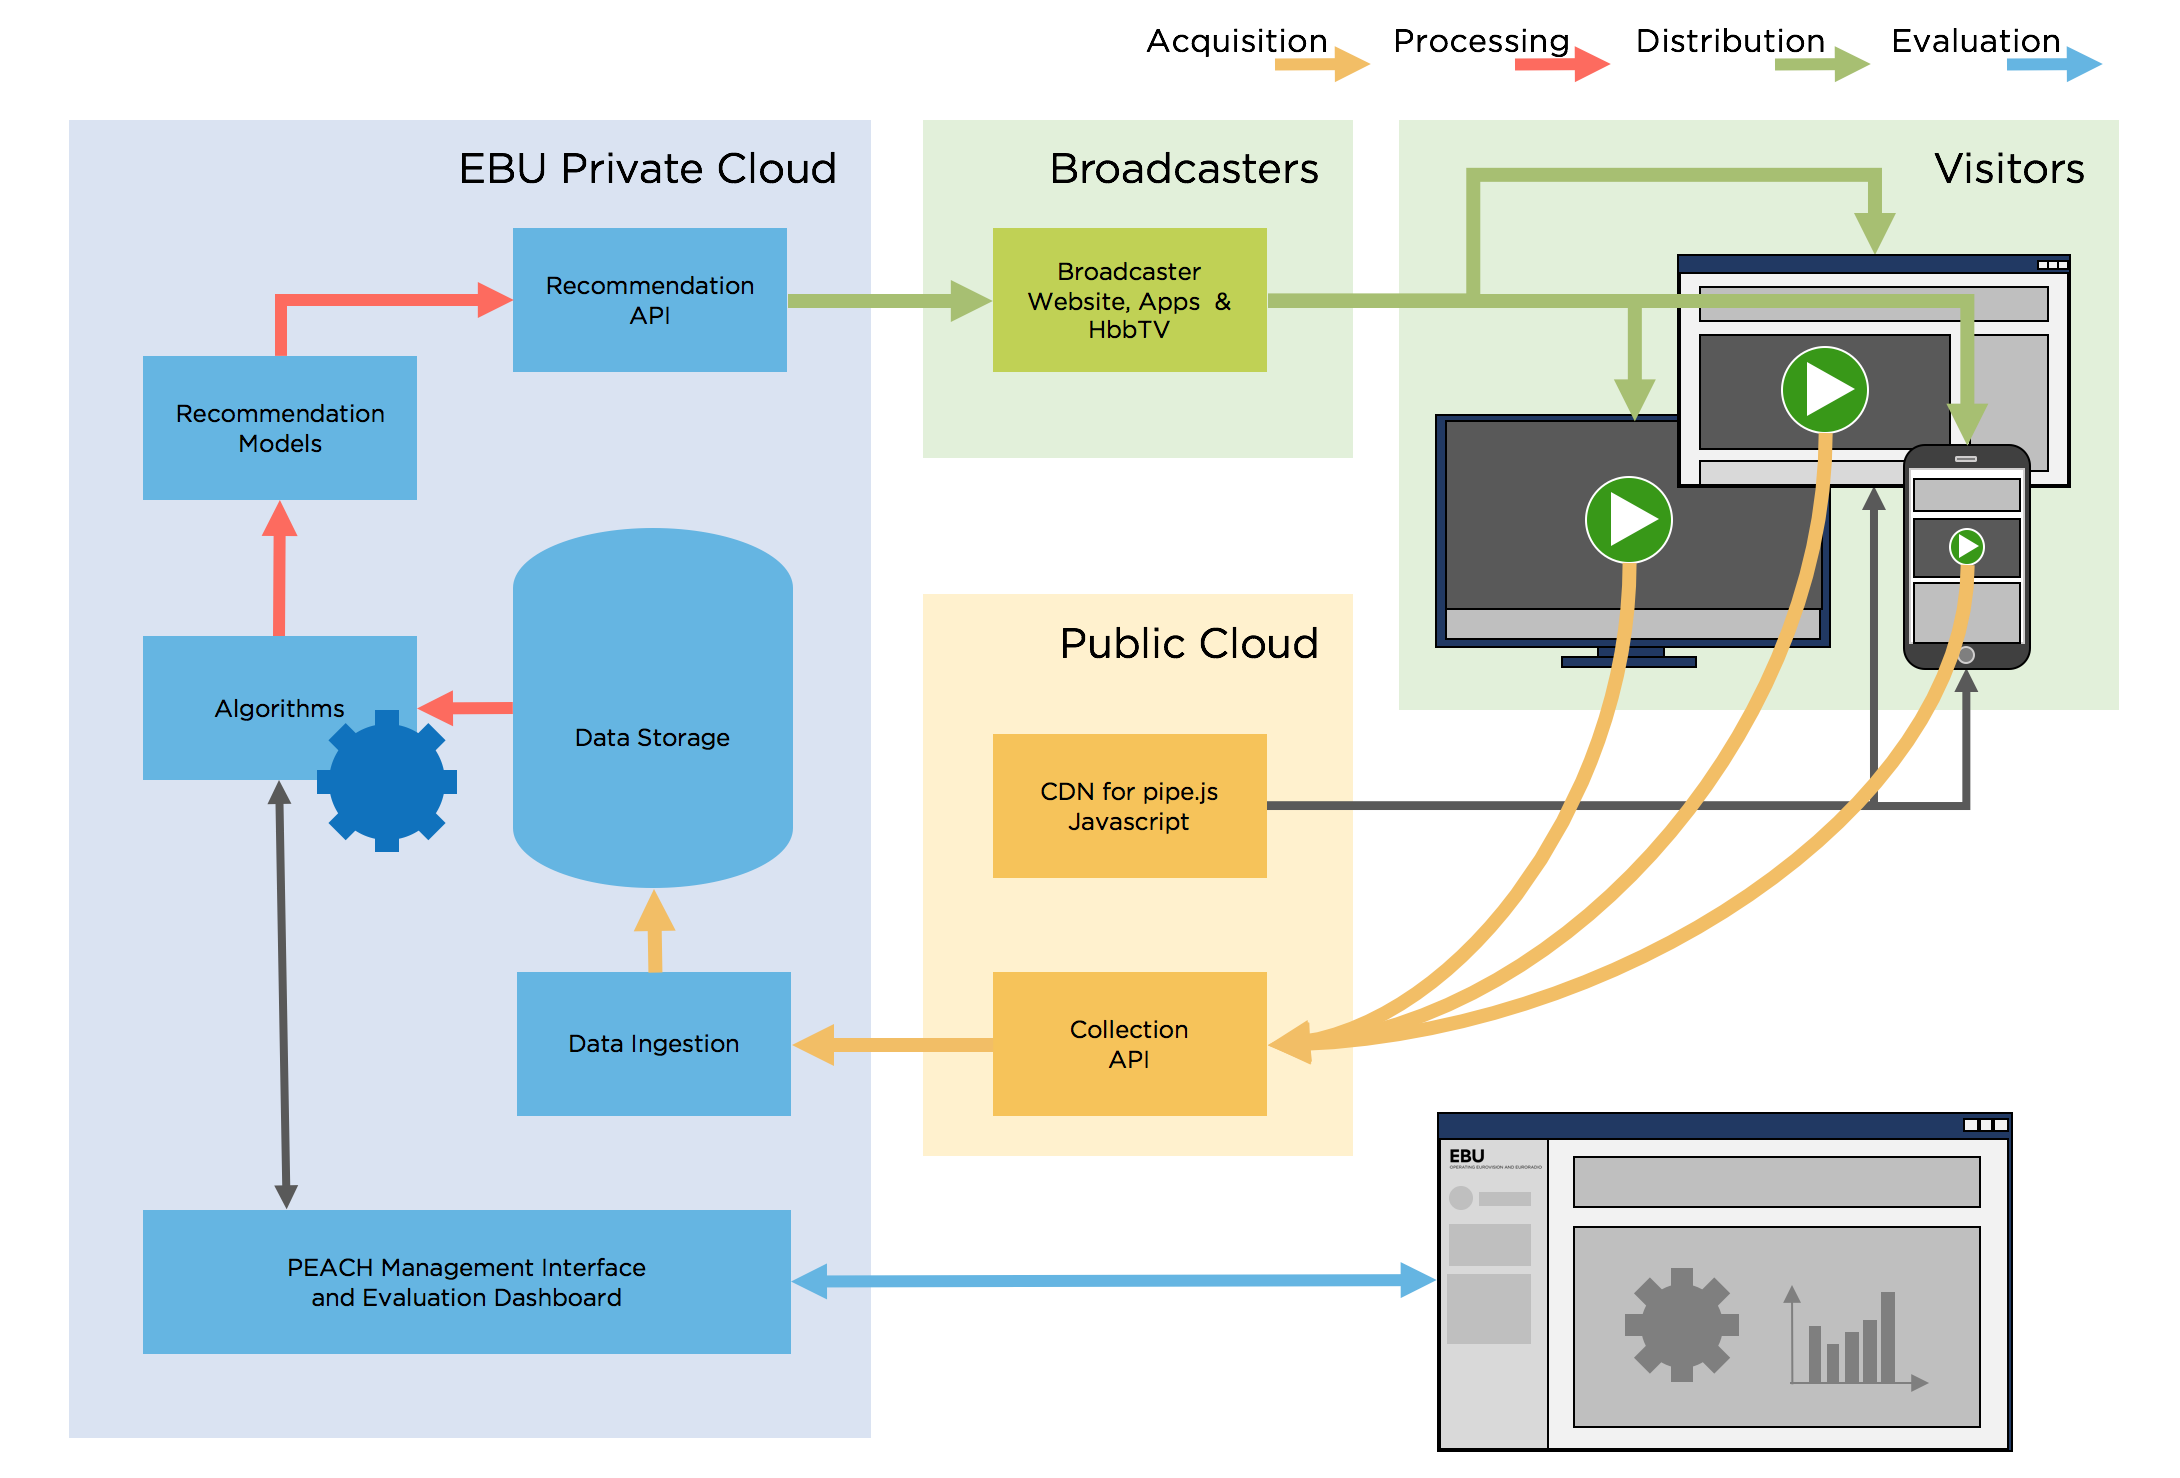 EBU Recommendation Service Overview